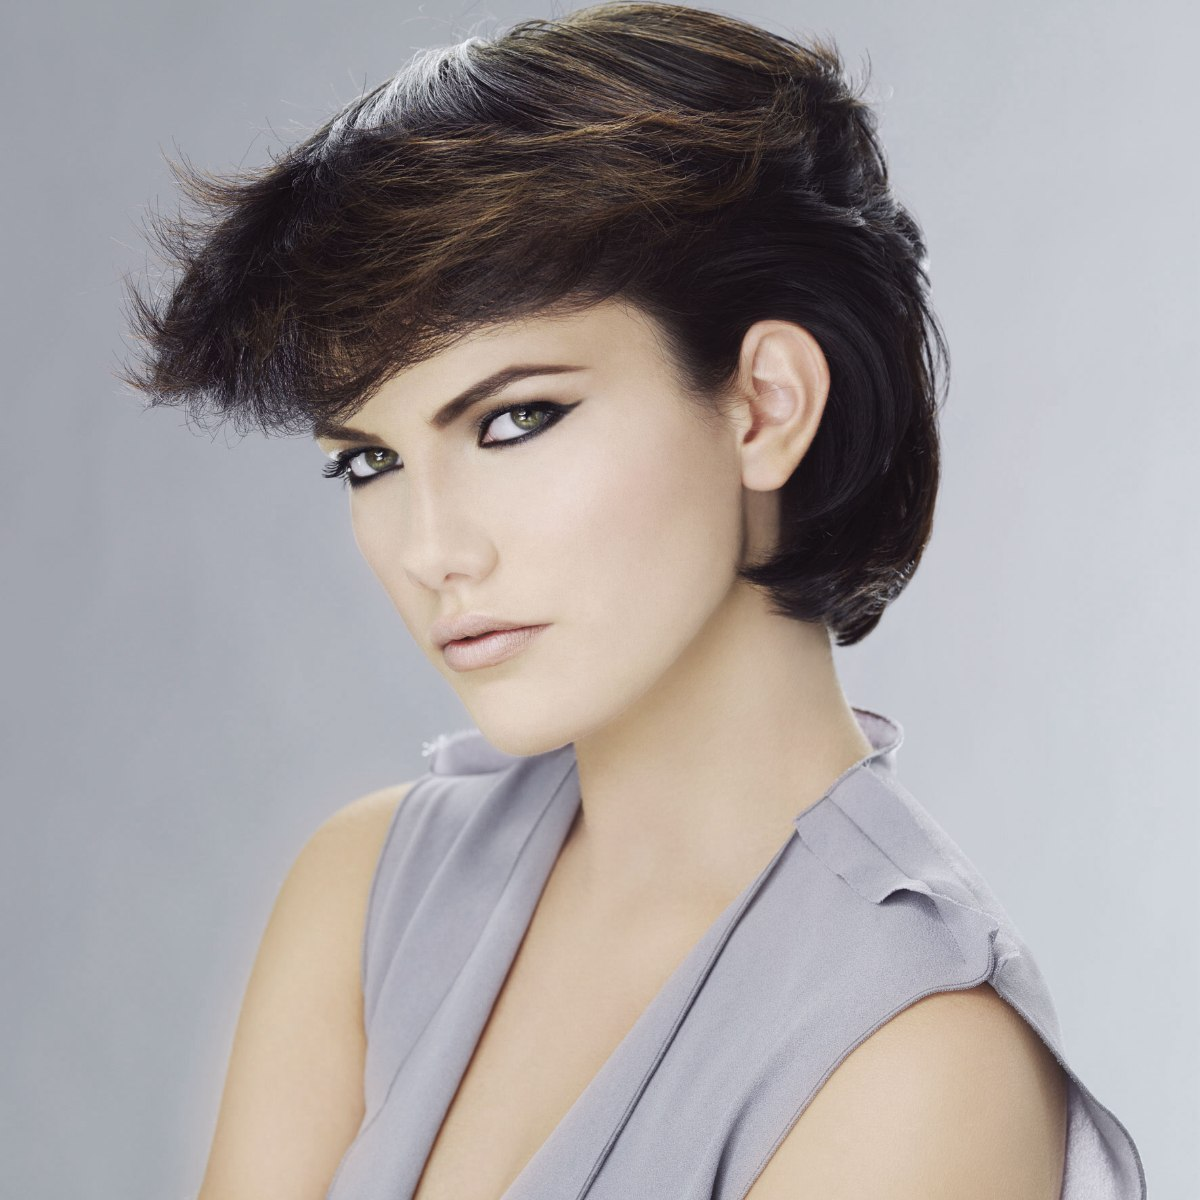 Enjoyable 80S Short Hair Look With A Curled Neck And A Big Fringe Short Hairstyles Gunalazisus